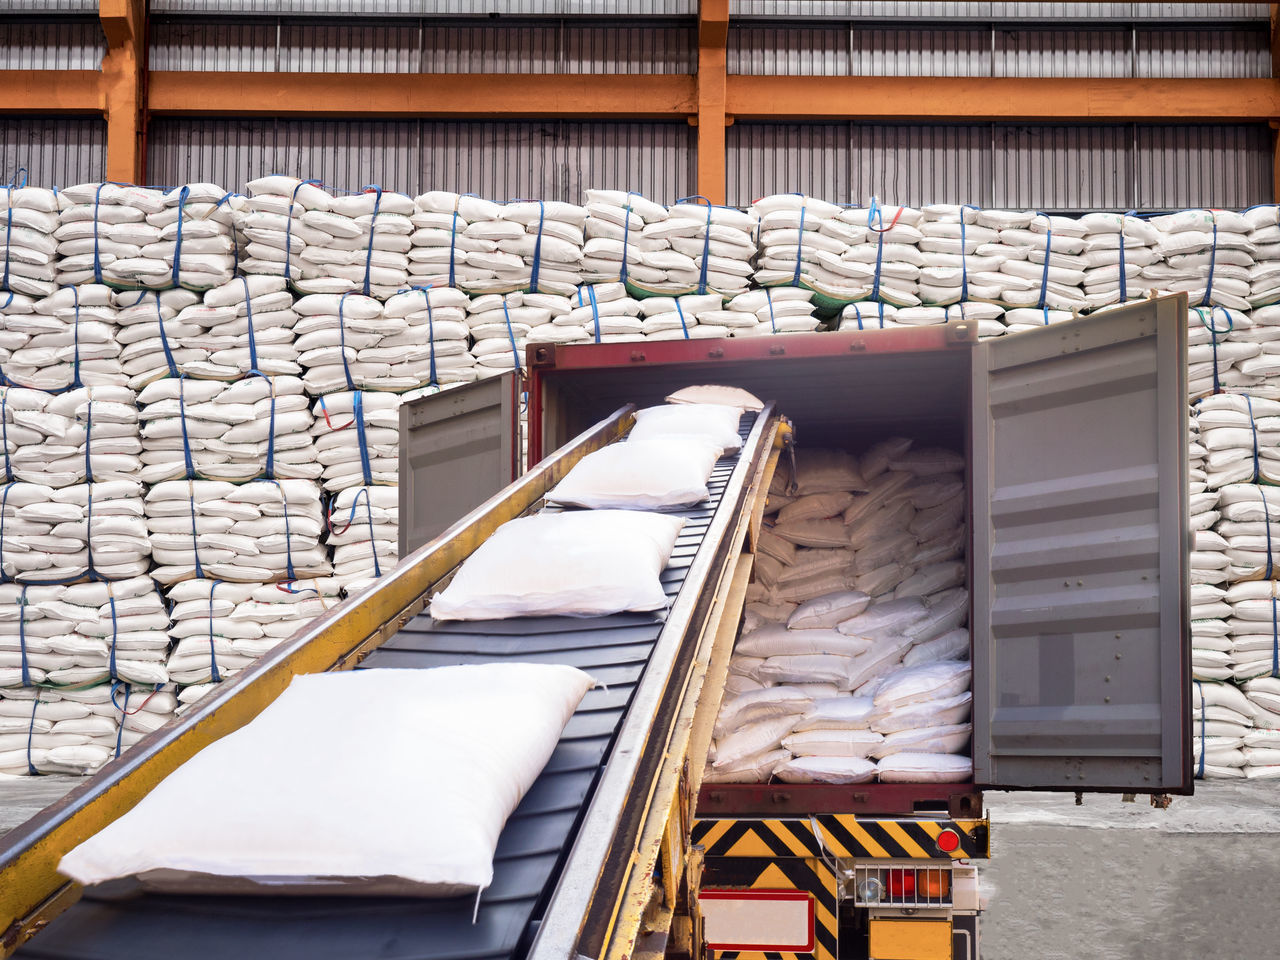 sugar in bags are stuffing in container at warehouse Sugar Import Export Stock Stuffing Container equipment Manufacturing Equipment Factory white Port Discharging Indoors  Lifting Cargo Container Crane Starch Rice Freight Transportation Trade transportation Shipping  Industry Delivery Closing Time Safety Clean Custom